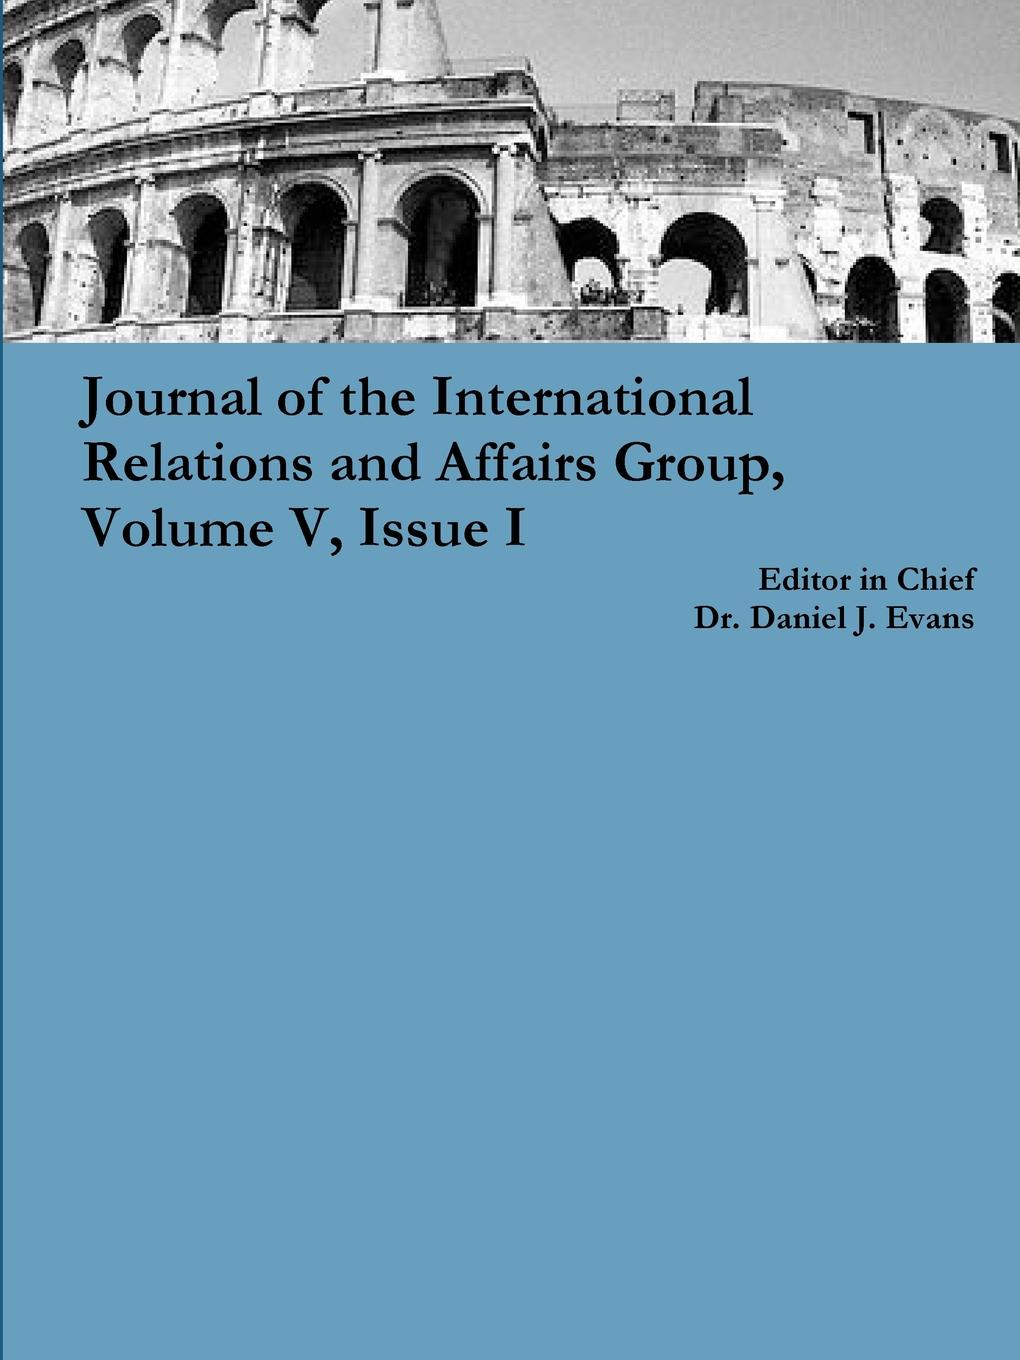 цены на Daniel Evans Journal of the International Relations and Affairs Group, Volume V, Issue I  в интернет-магазинах